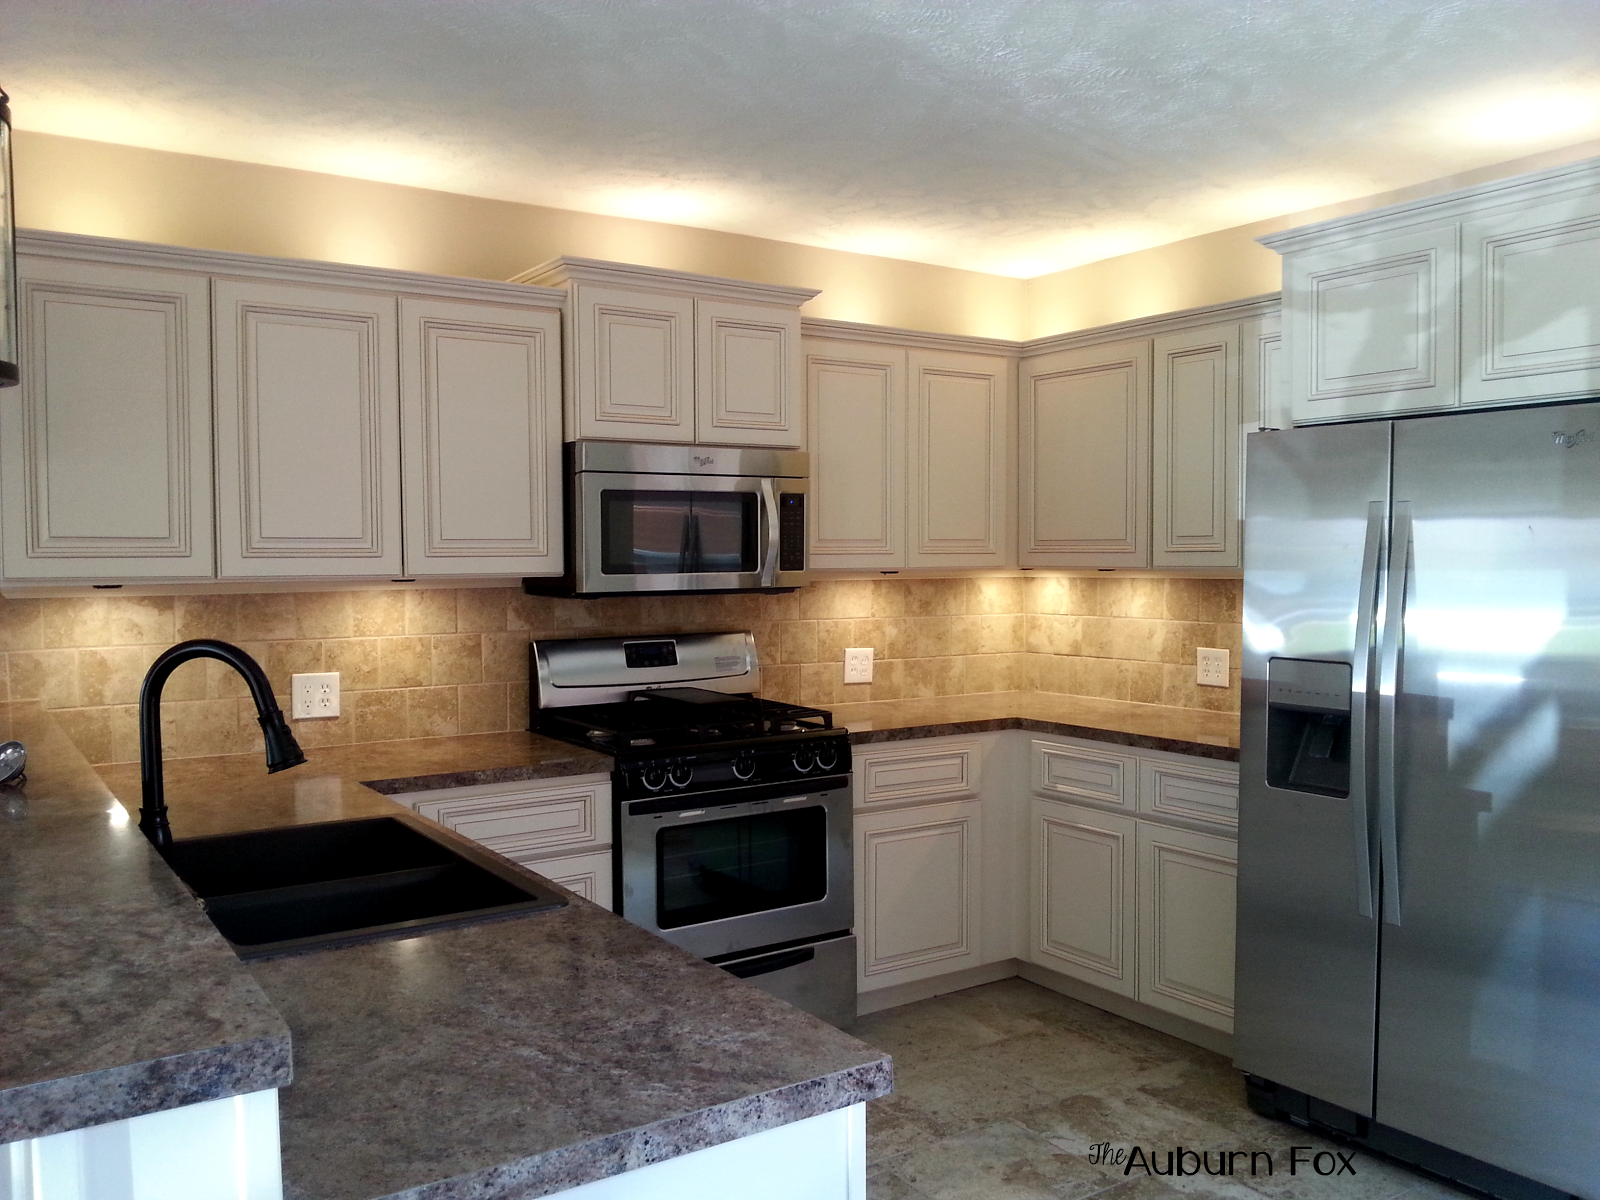 River Run Cabinets, Versitile Grey SW Paint, Amerock Hardware #